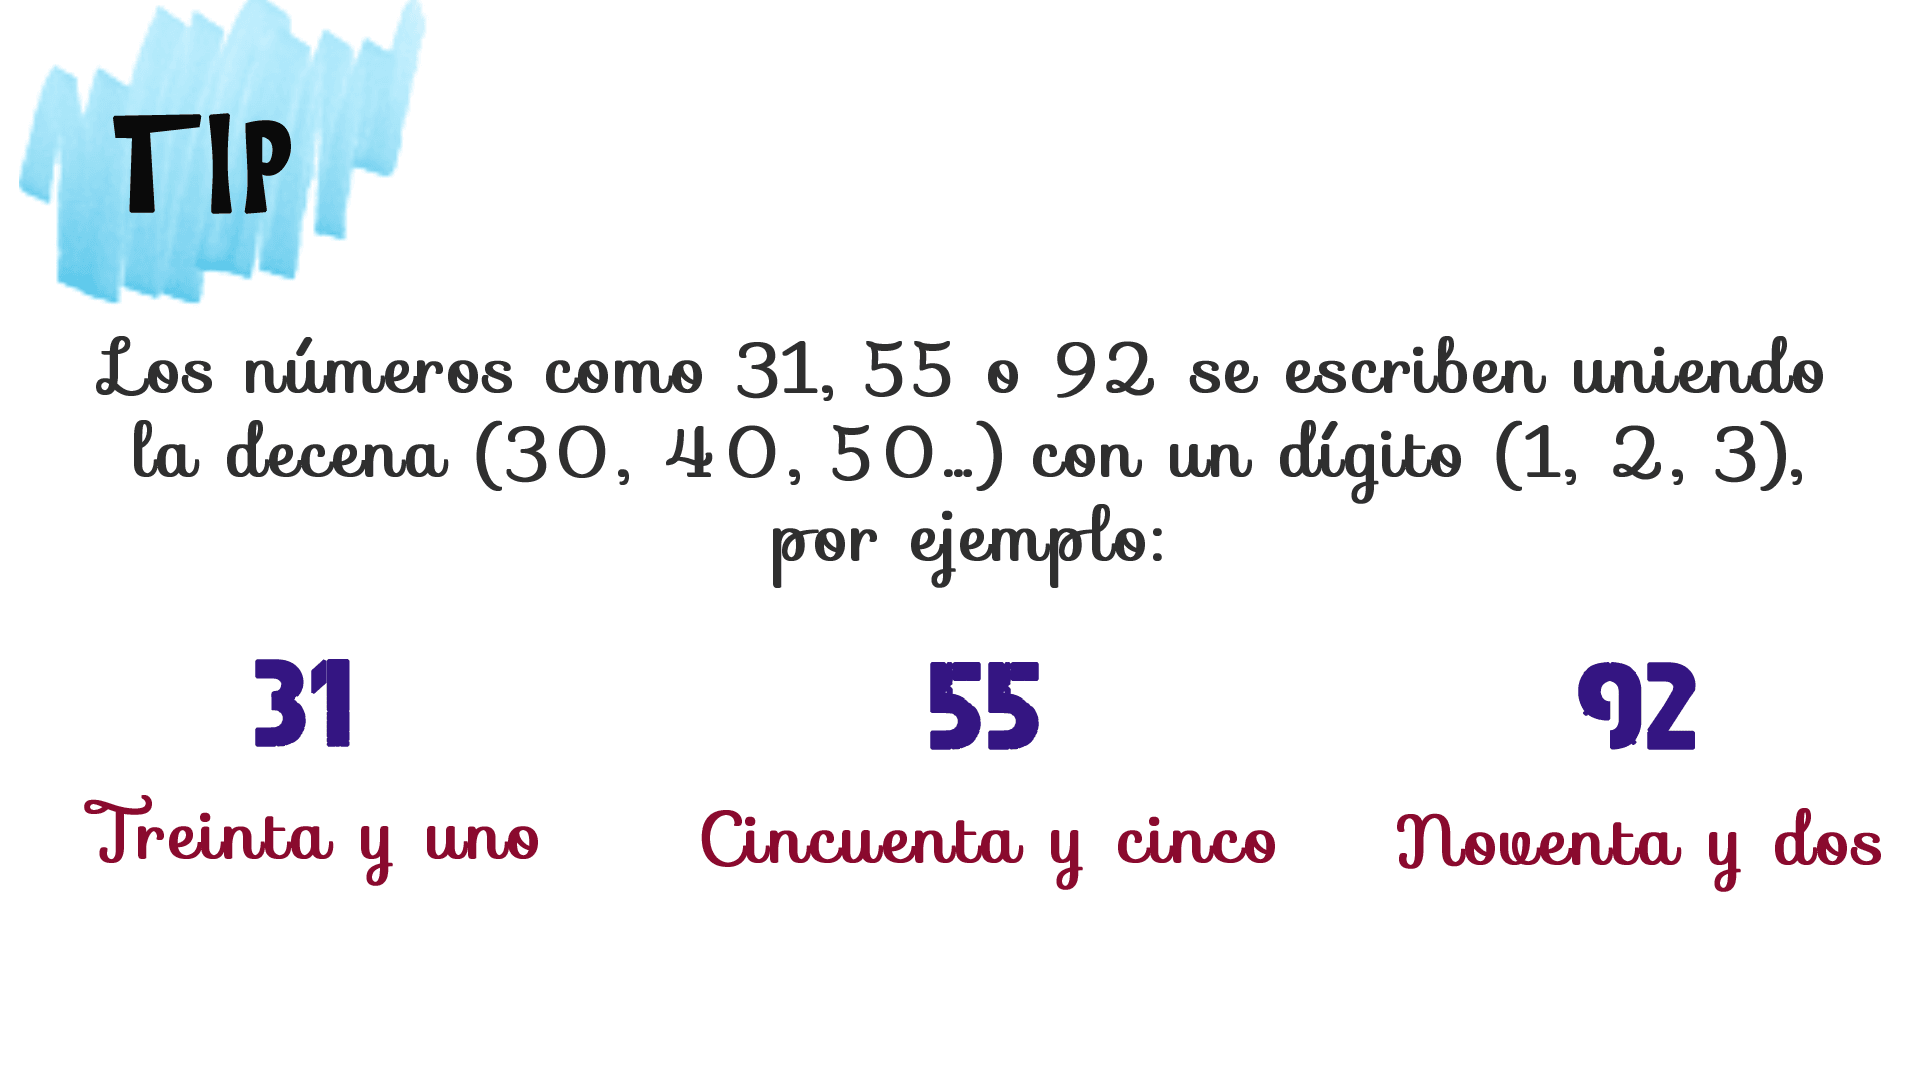 Spanish Numbers Such As 31 55 Or 92 Are Written By Joining The Tens 30 40 50 With A